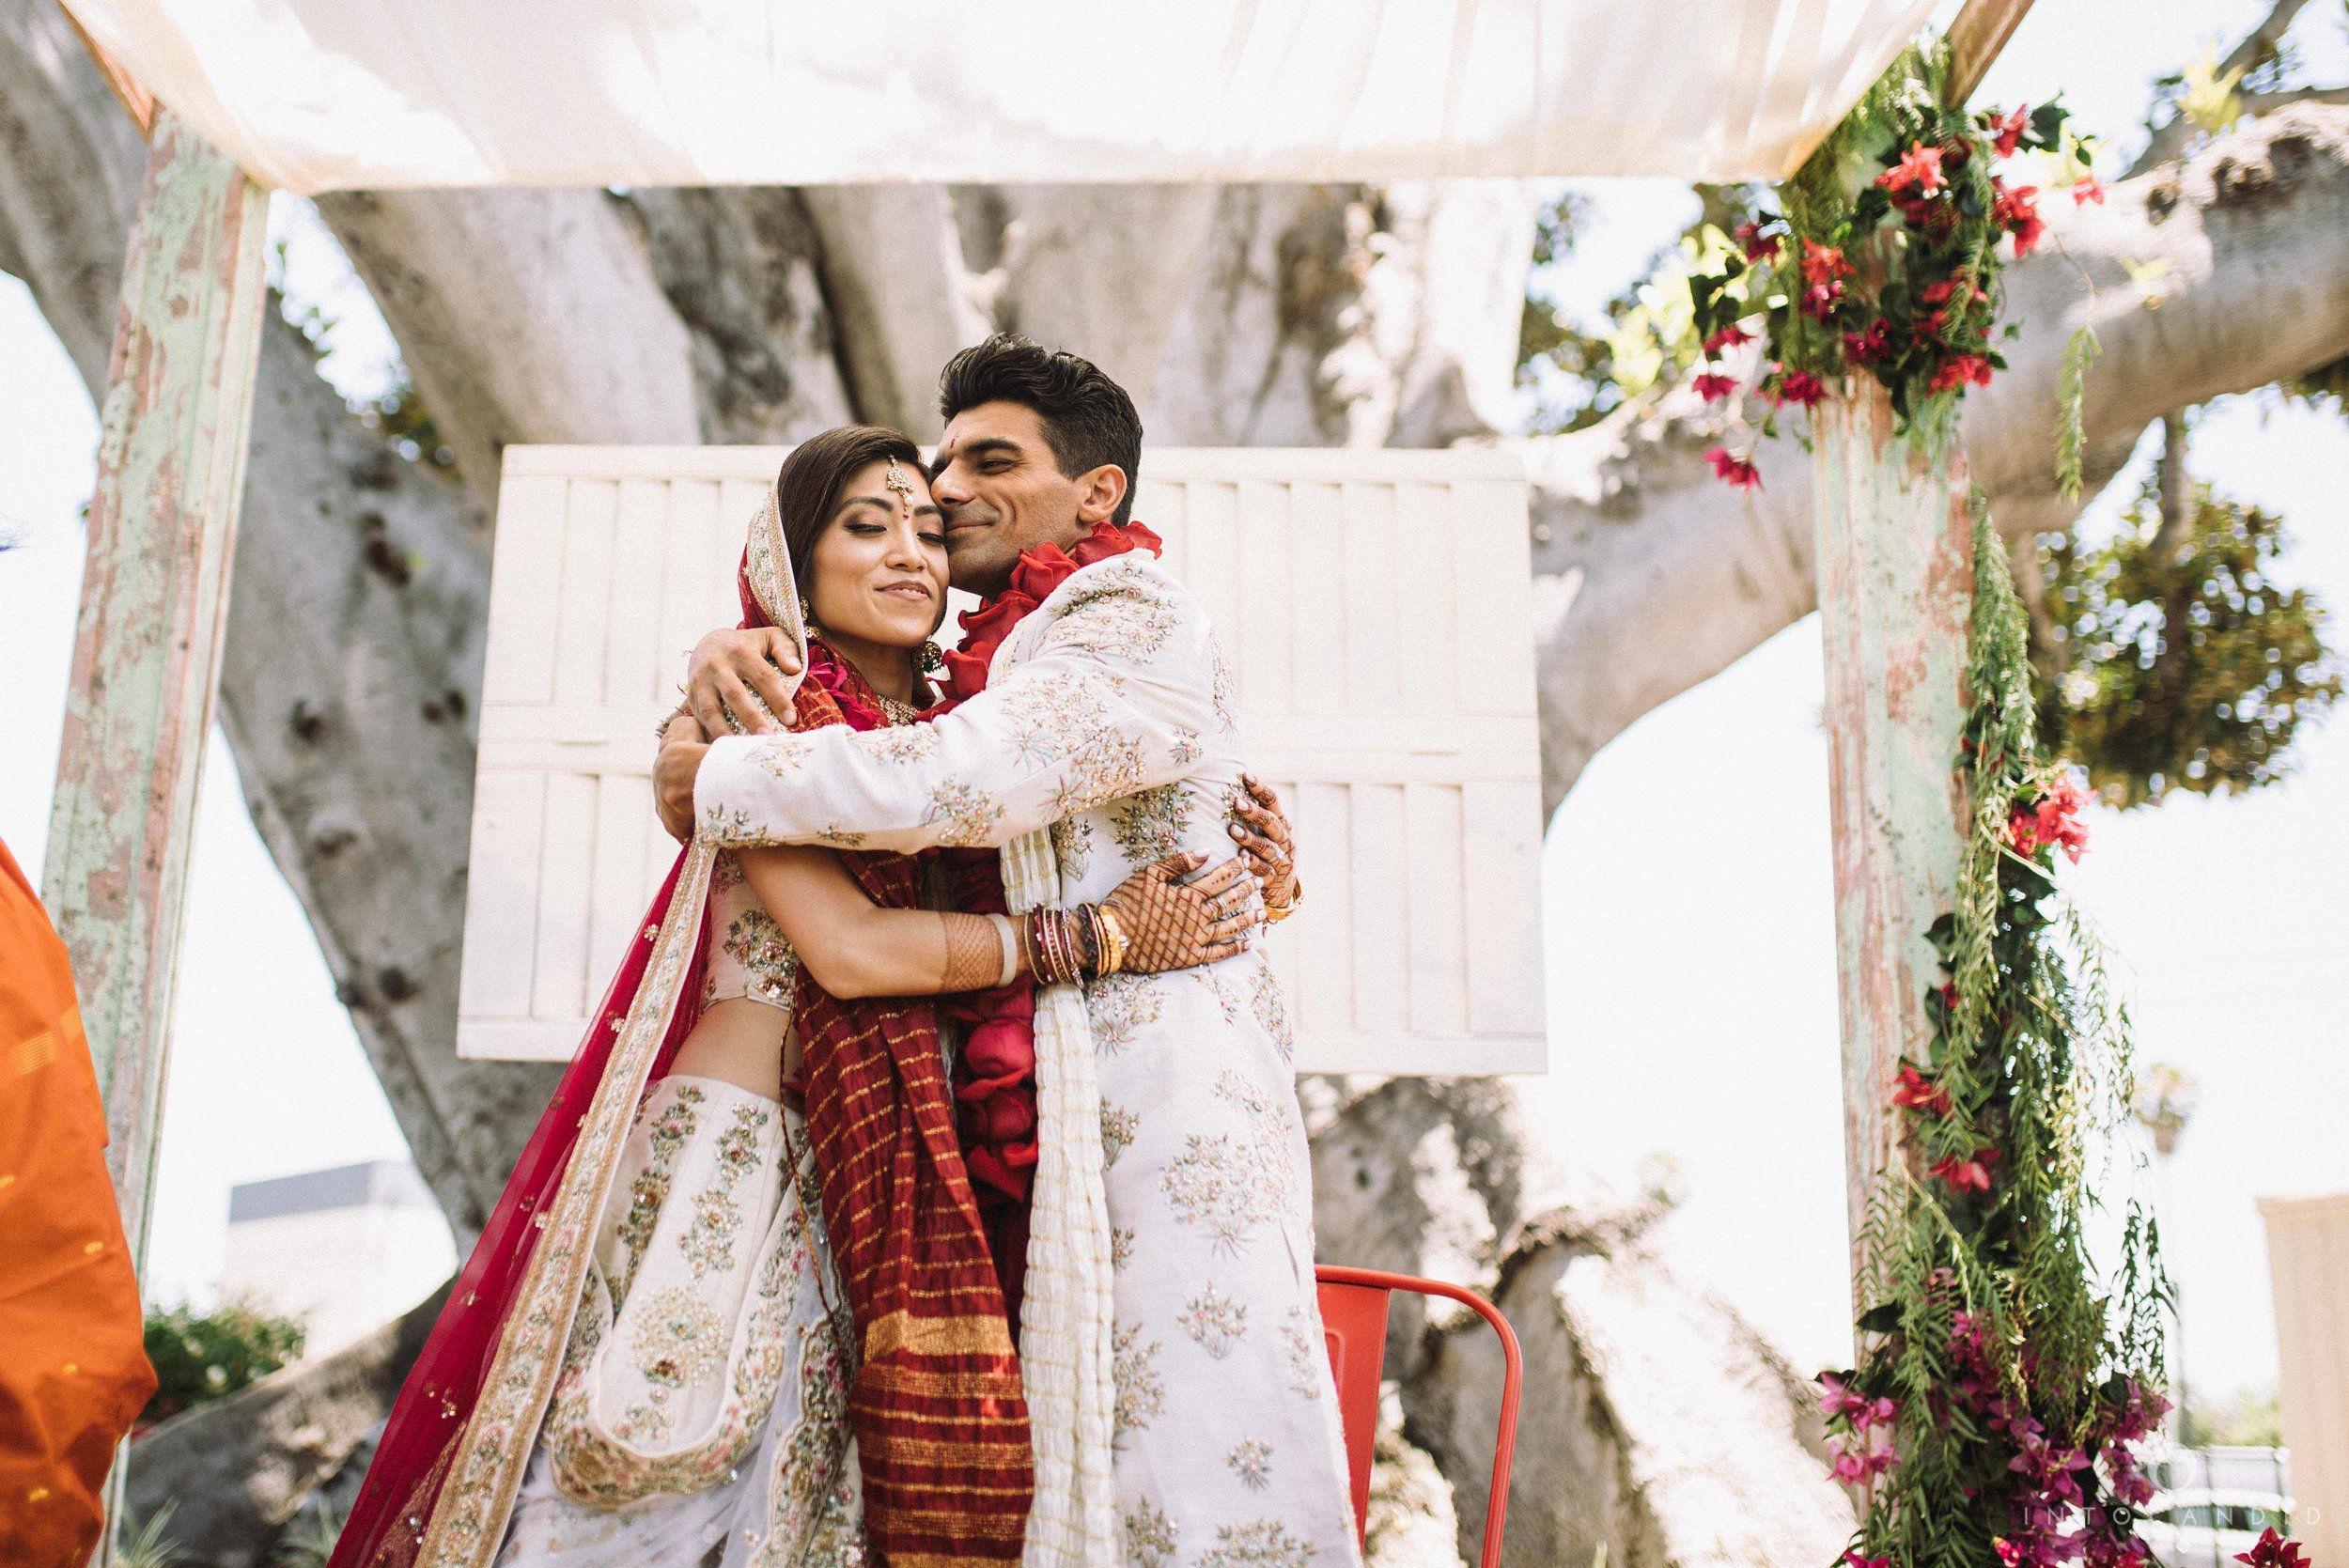 LosAngeles_Indian_Wedding_Photographer_AS_117.jpg